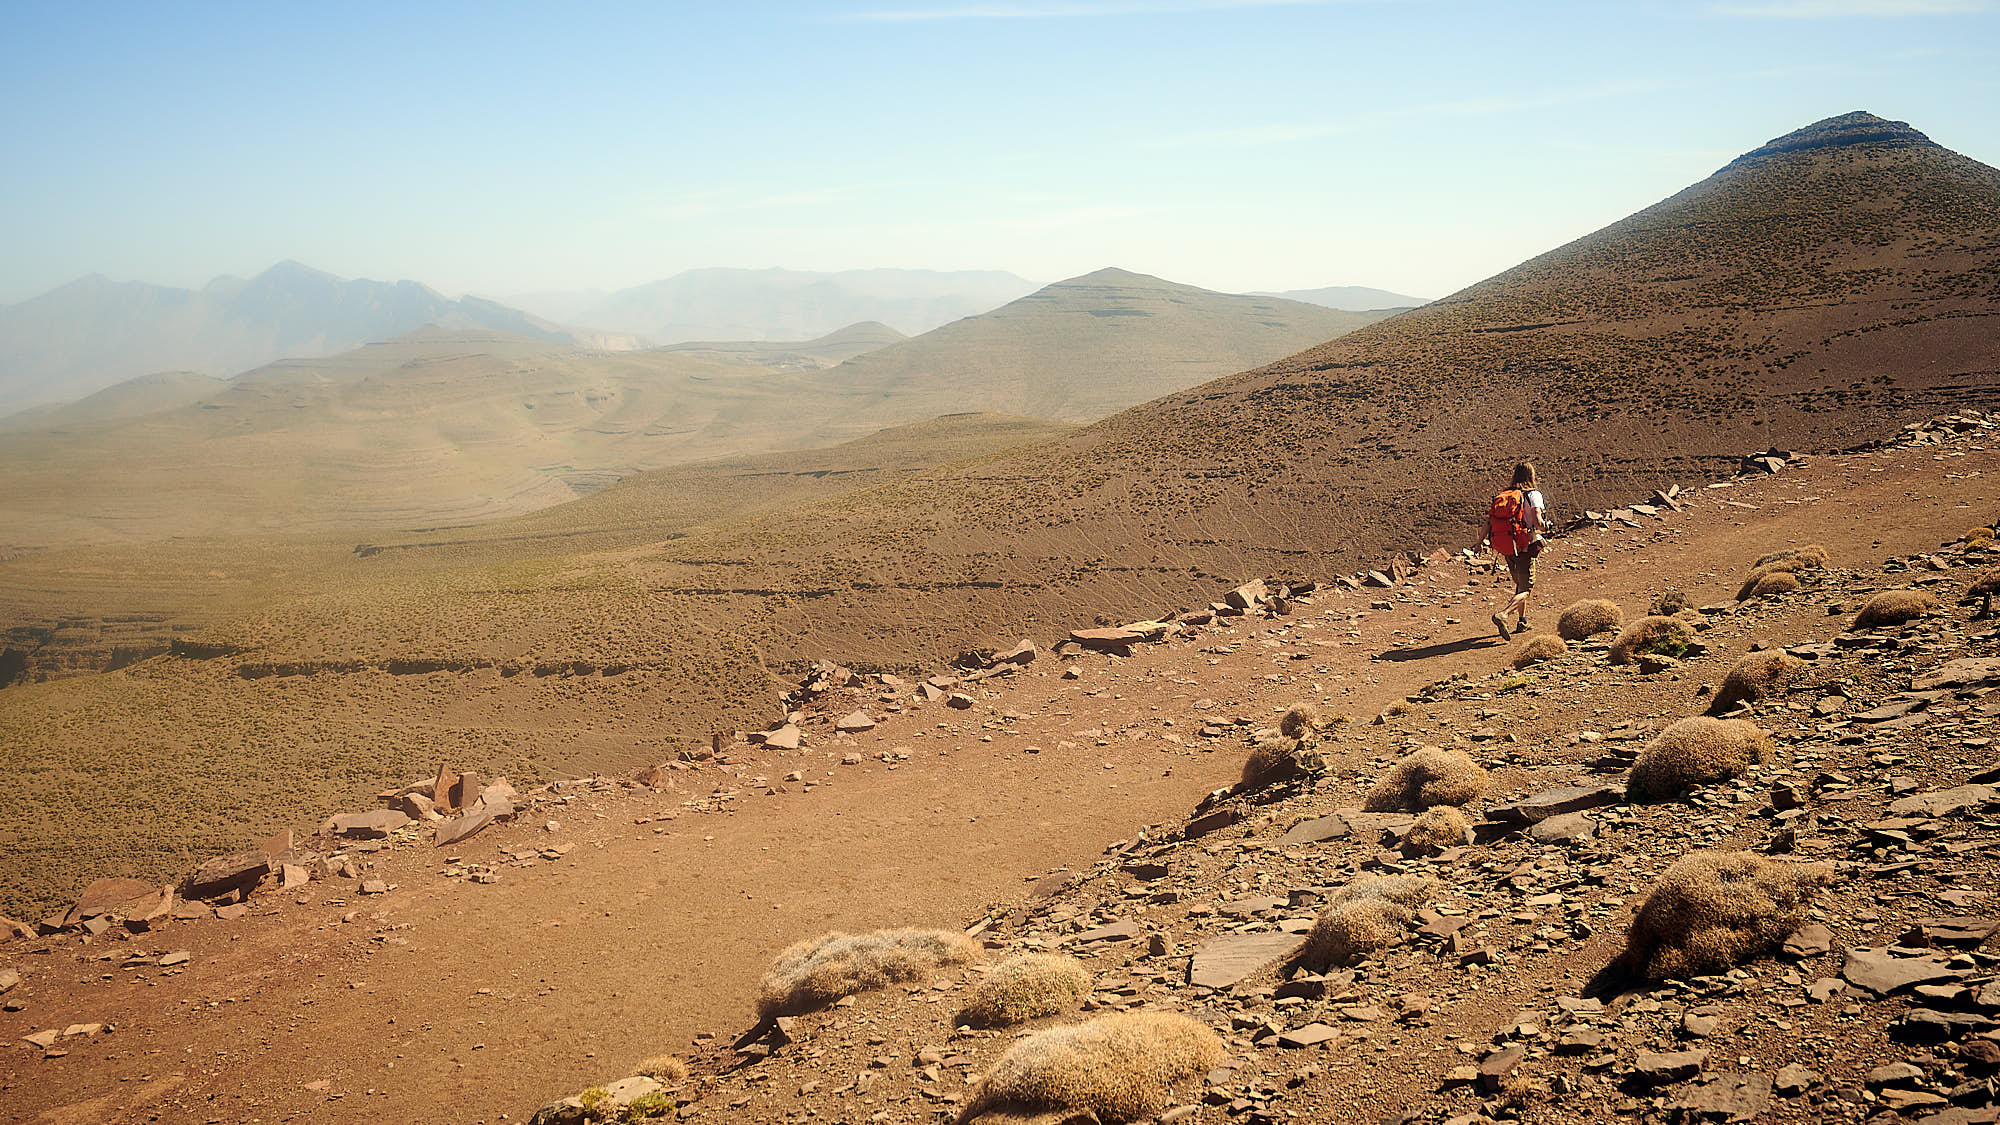 Hiker on a trail in Morocco's High Atlas mountain ridge